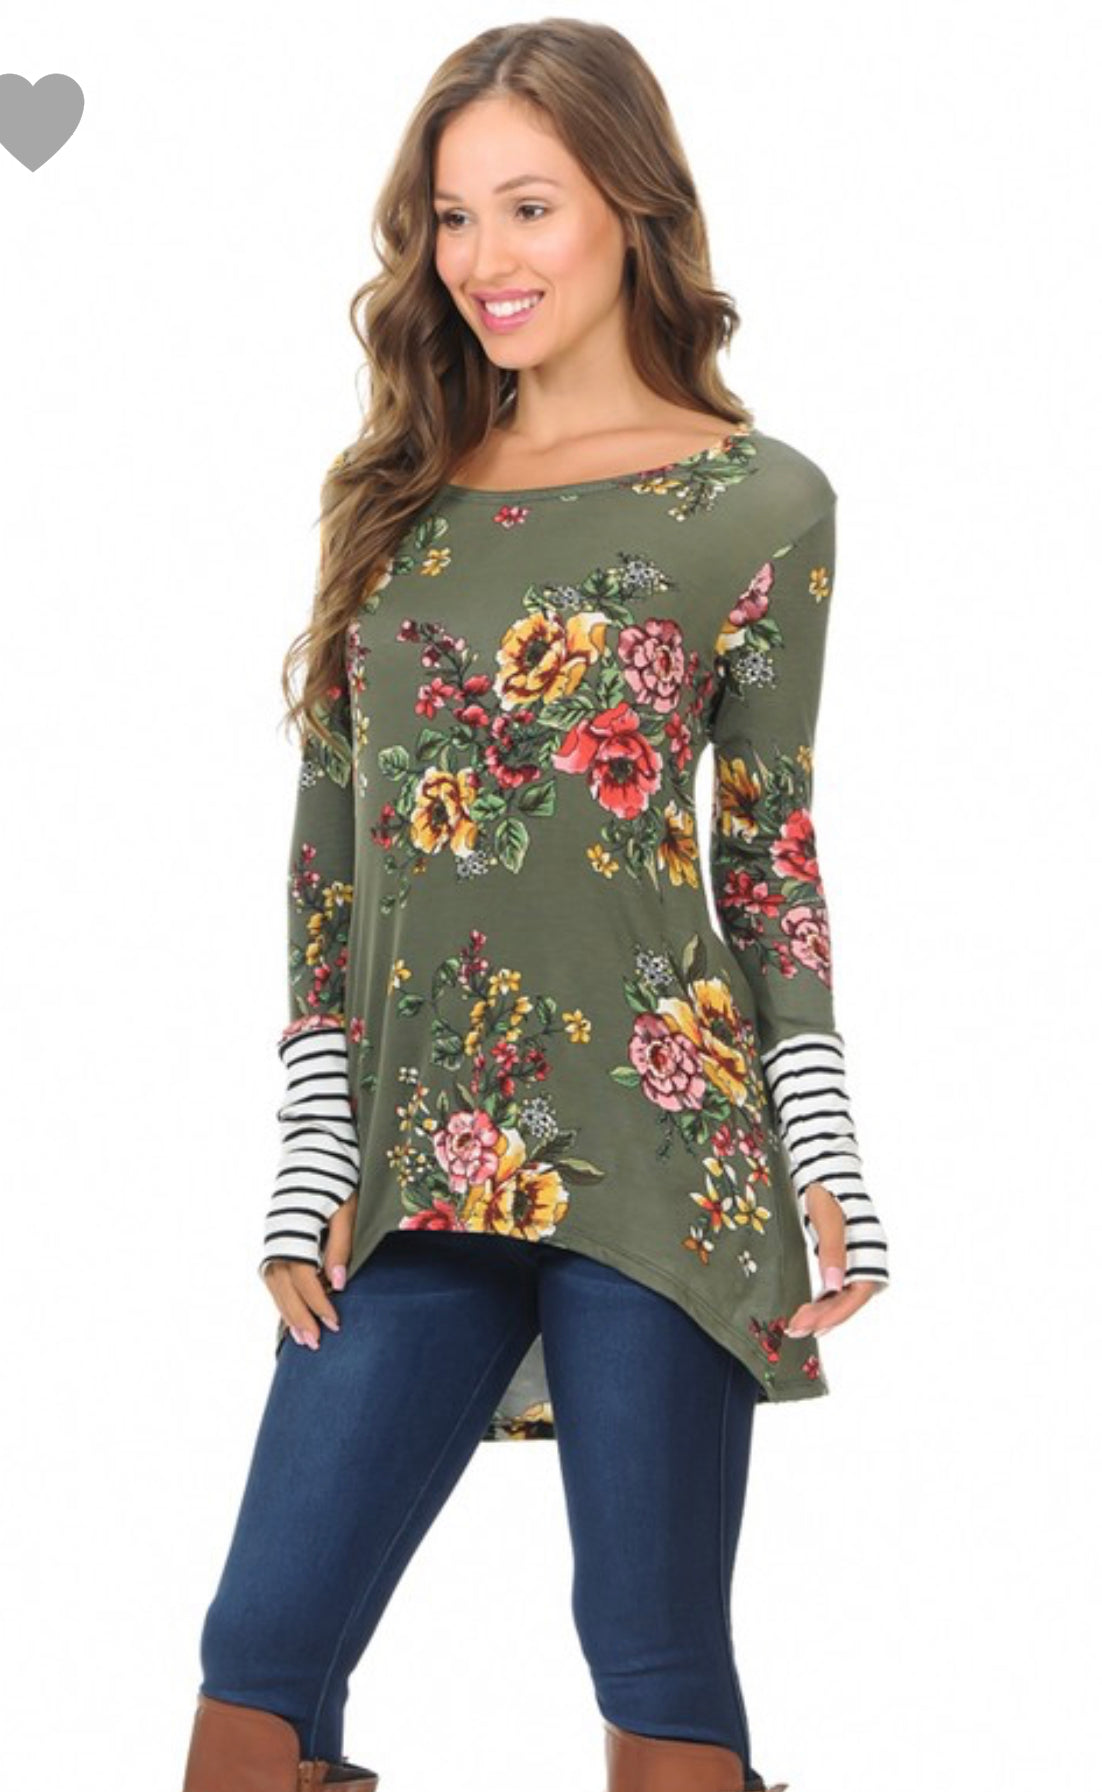 Olive Floral High Low Top with Thumbholes